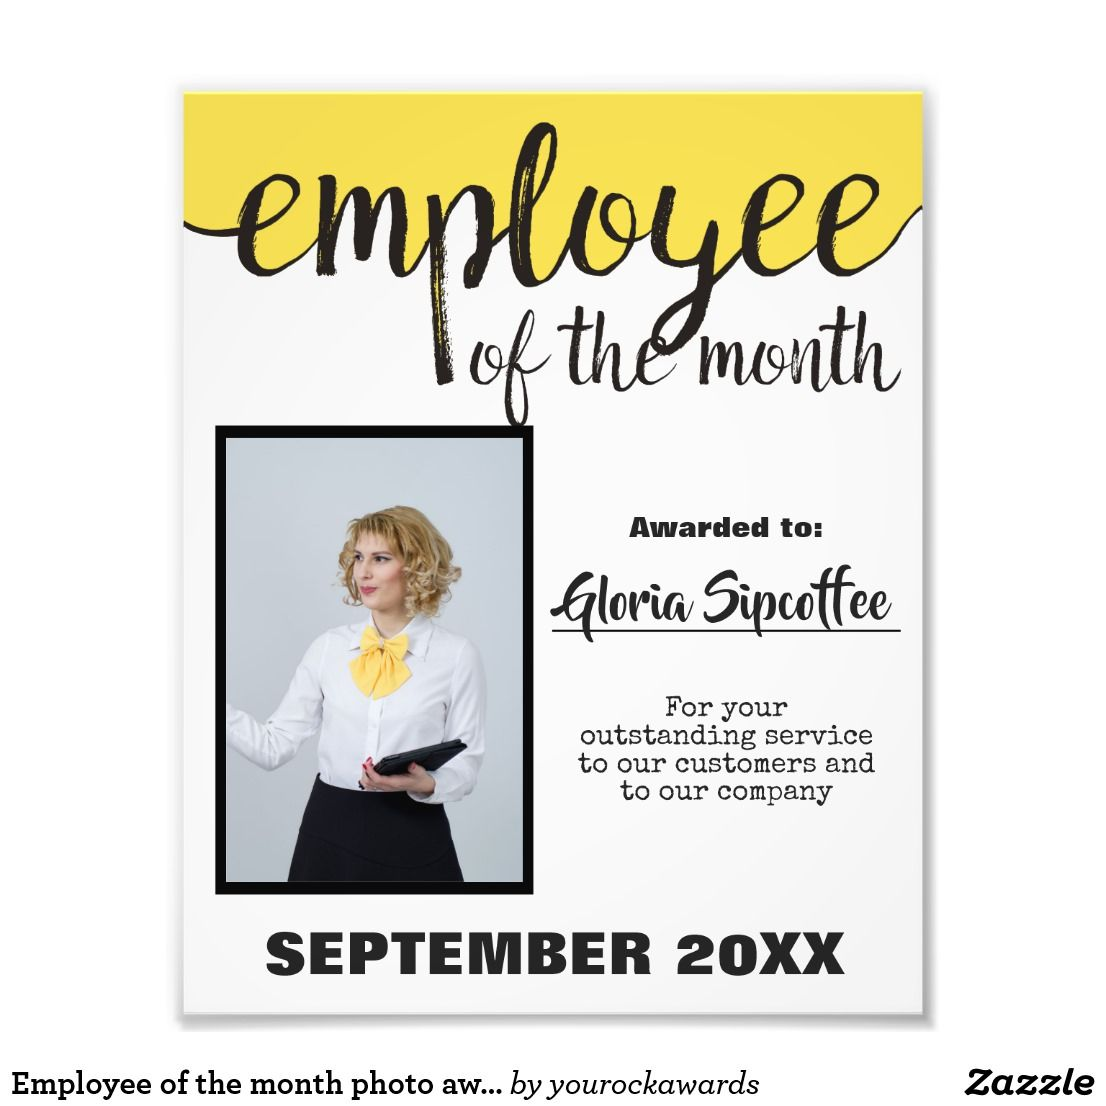 employee of the month photo award